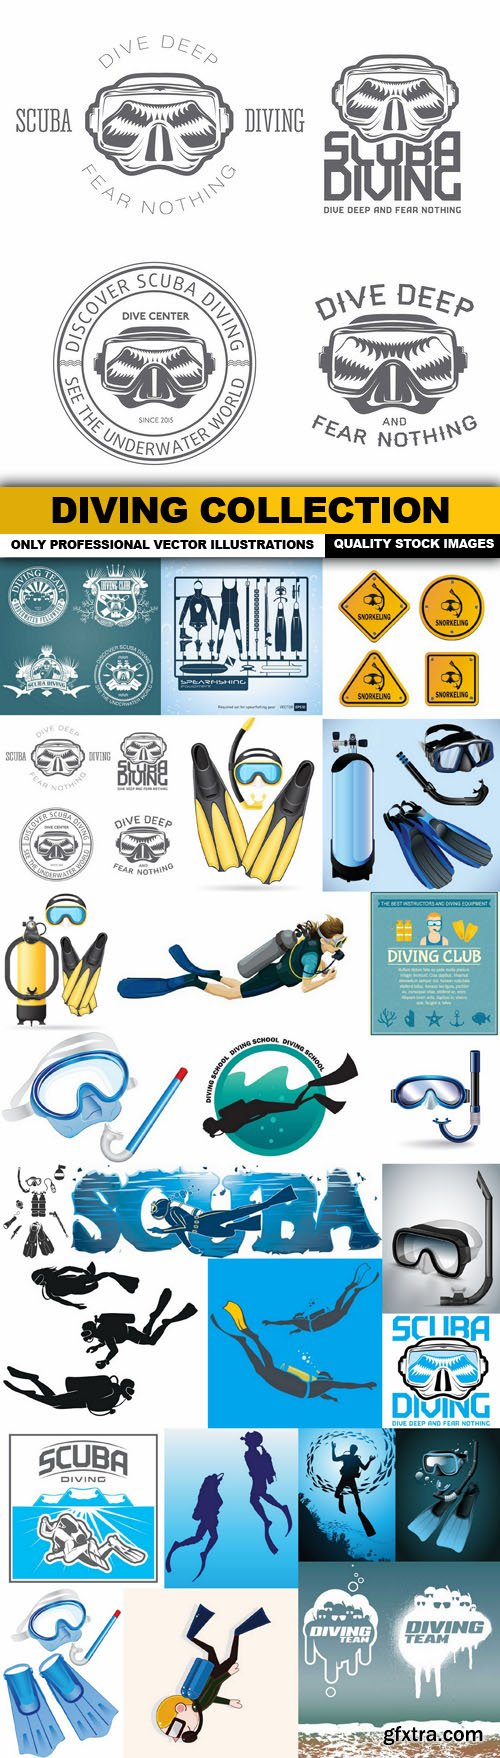 Diving Collection - 25 Vector